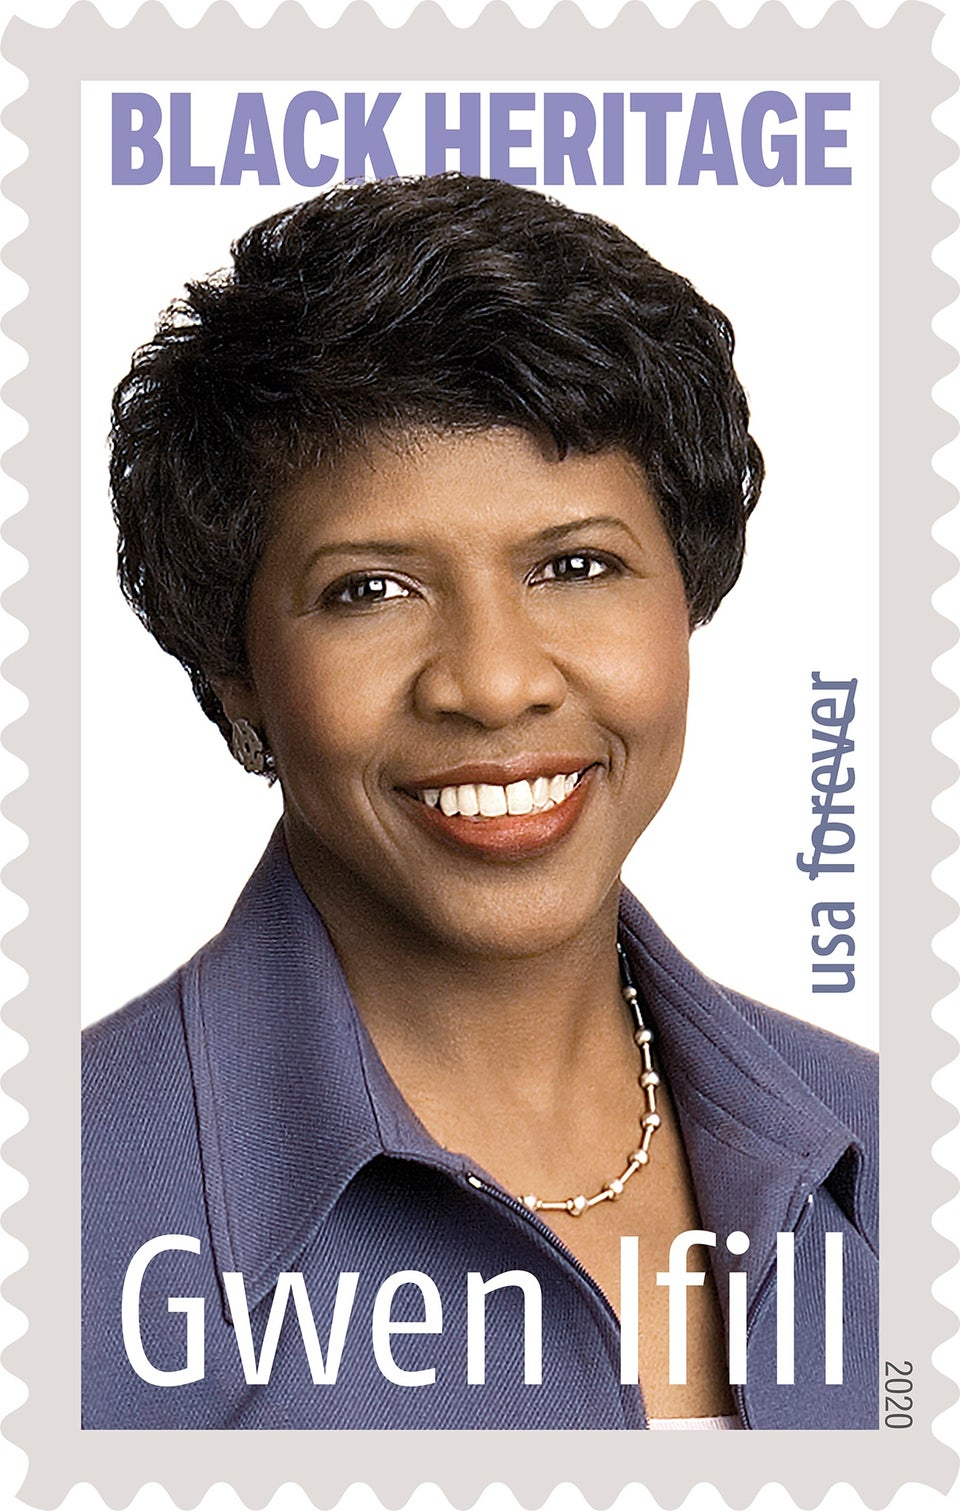 Journalist Gwen Ifill Honored With Black Heritage Forever Stamp